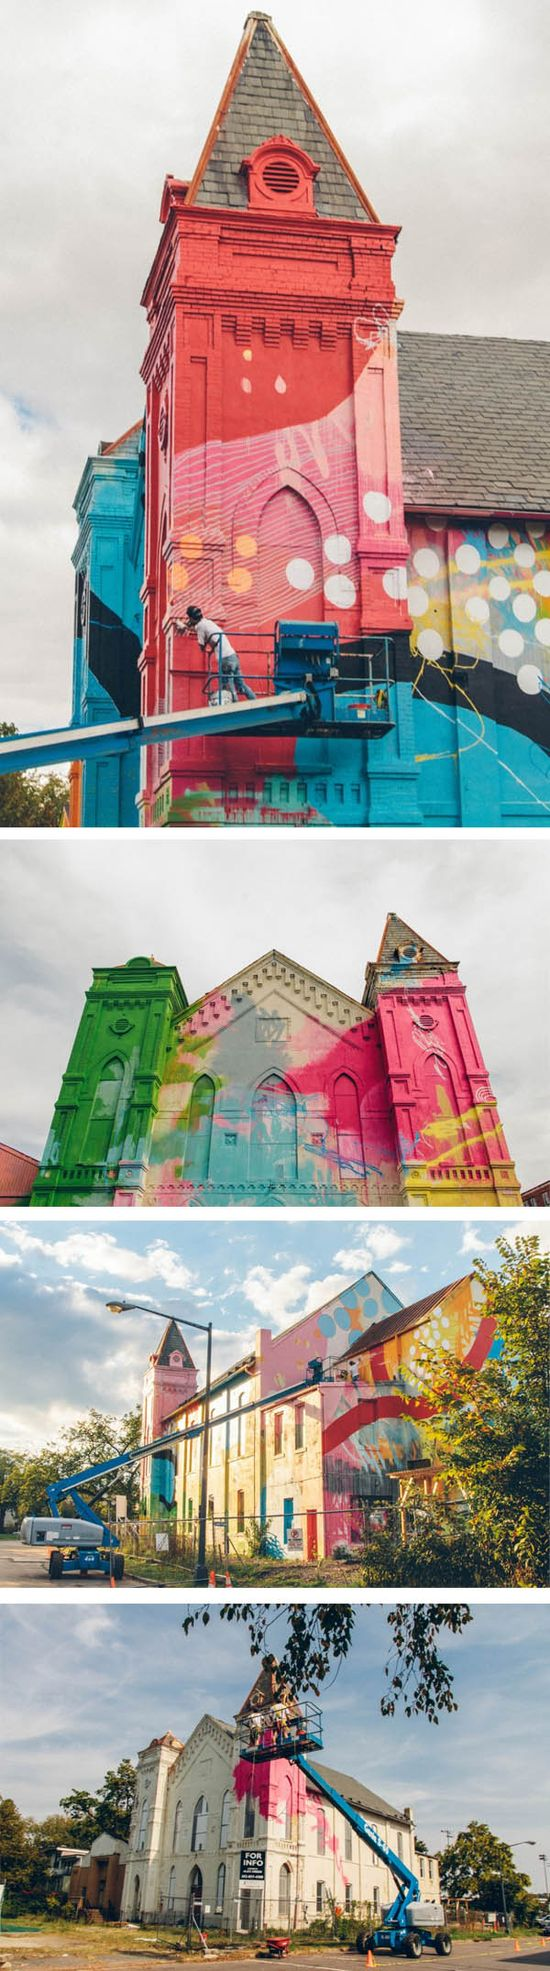 Mural Installation by Alex Brewer